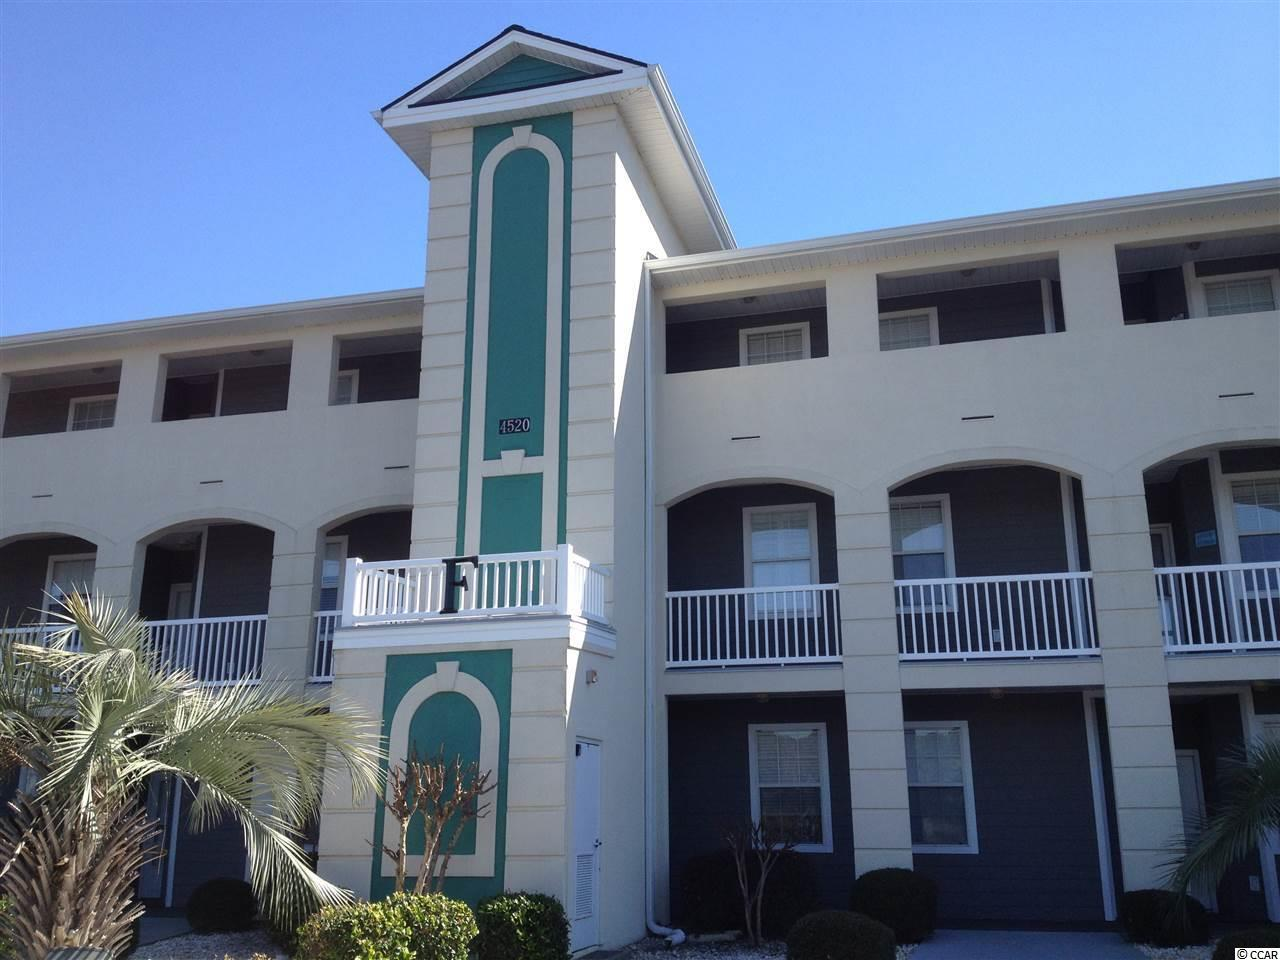 Condo MLS:1810032 Carolina Yacht Landing  4520 N Plantation Harbor Dr Little River SC